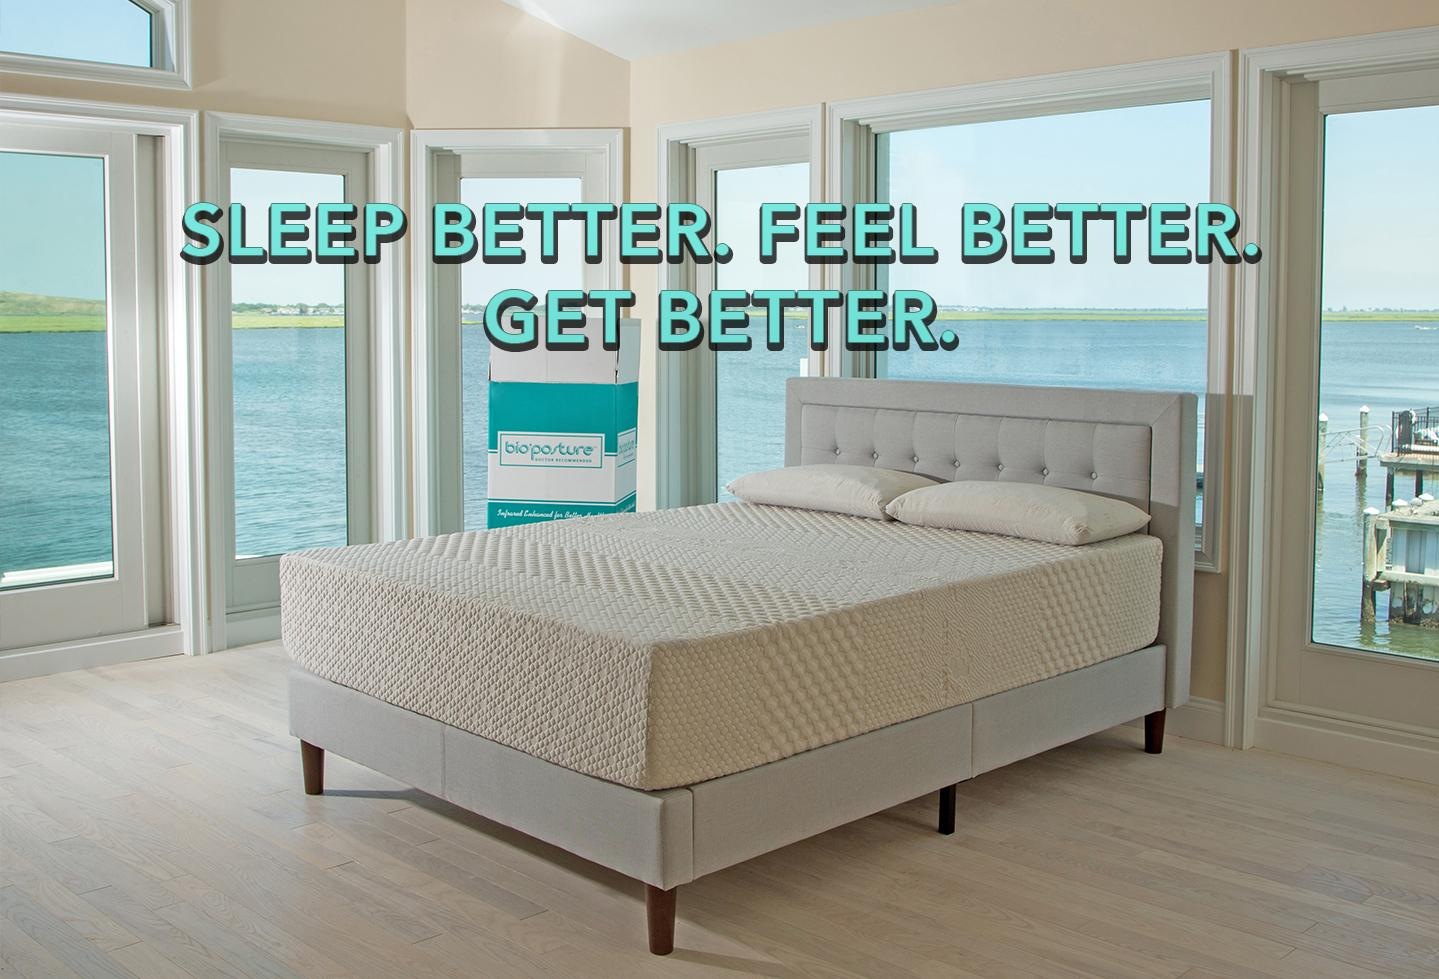 Sleep Better. Feel Better. Get Better